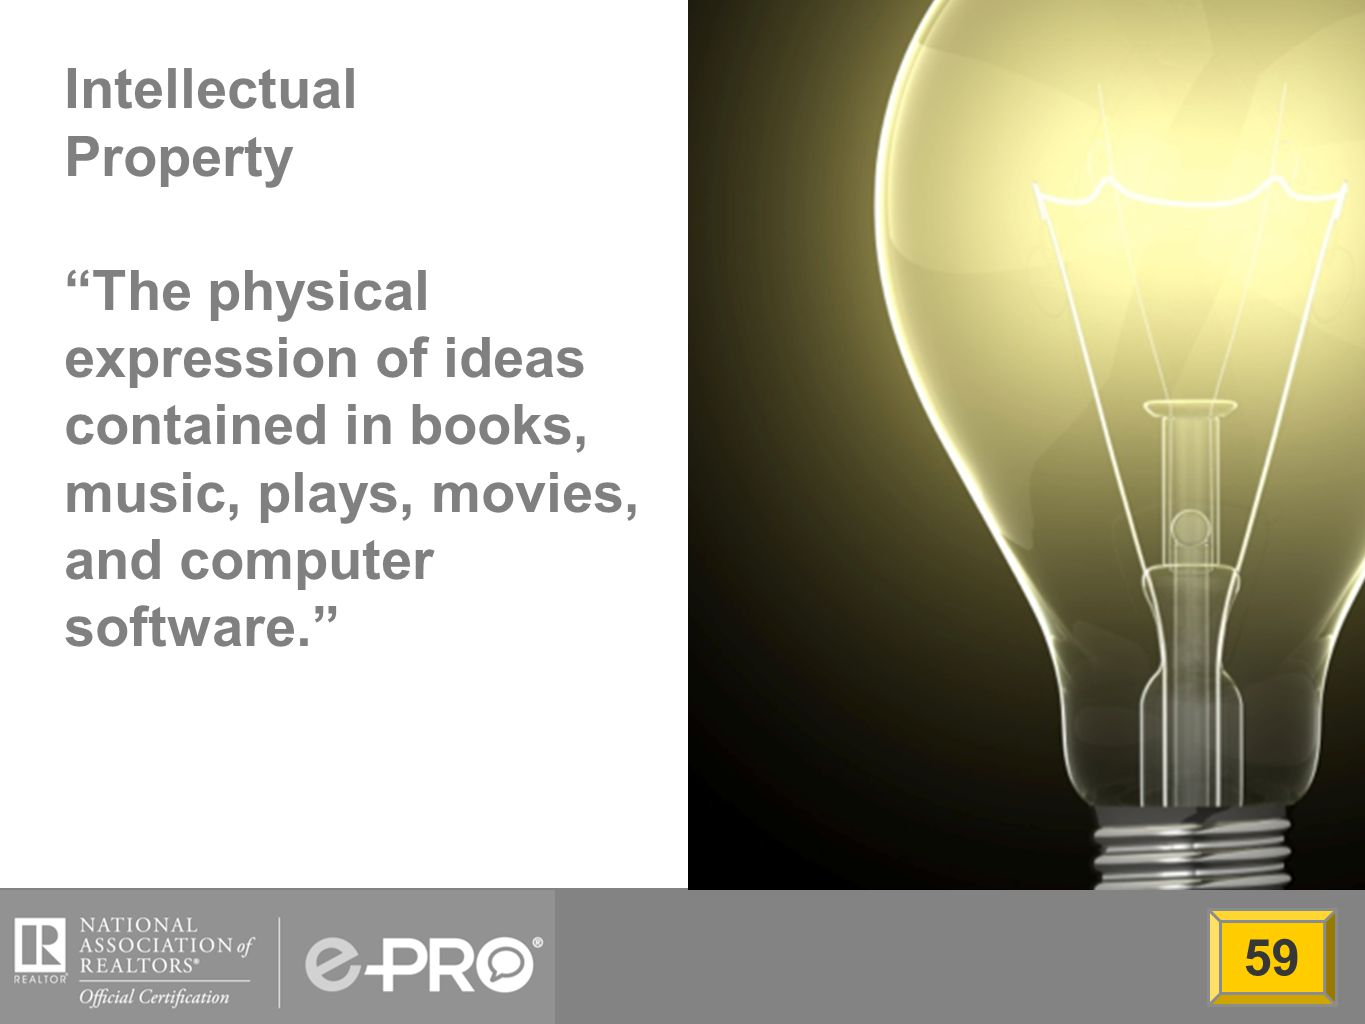 Intellectual Property The physical expression of ideas contained in books, music, plays, movies, and computer software. 59